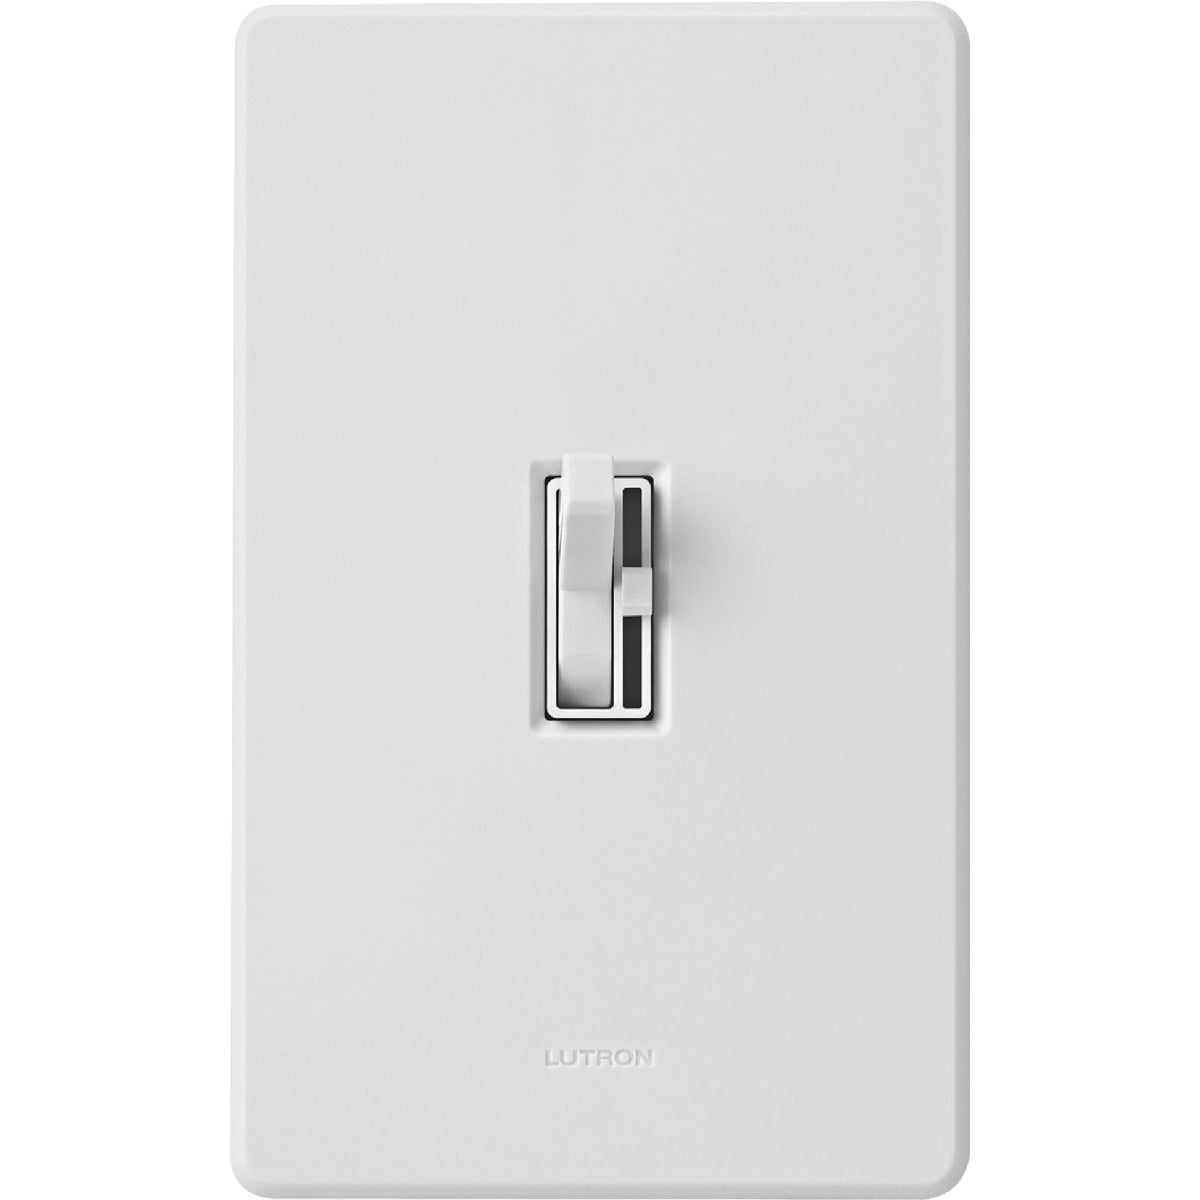 600W ECO DIMMER - TG-603PGH-WH by Lutron Elect Co Inc